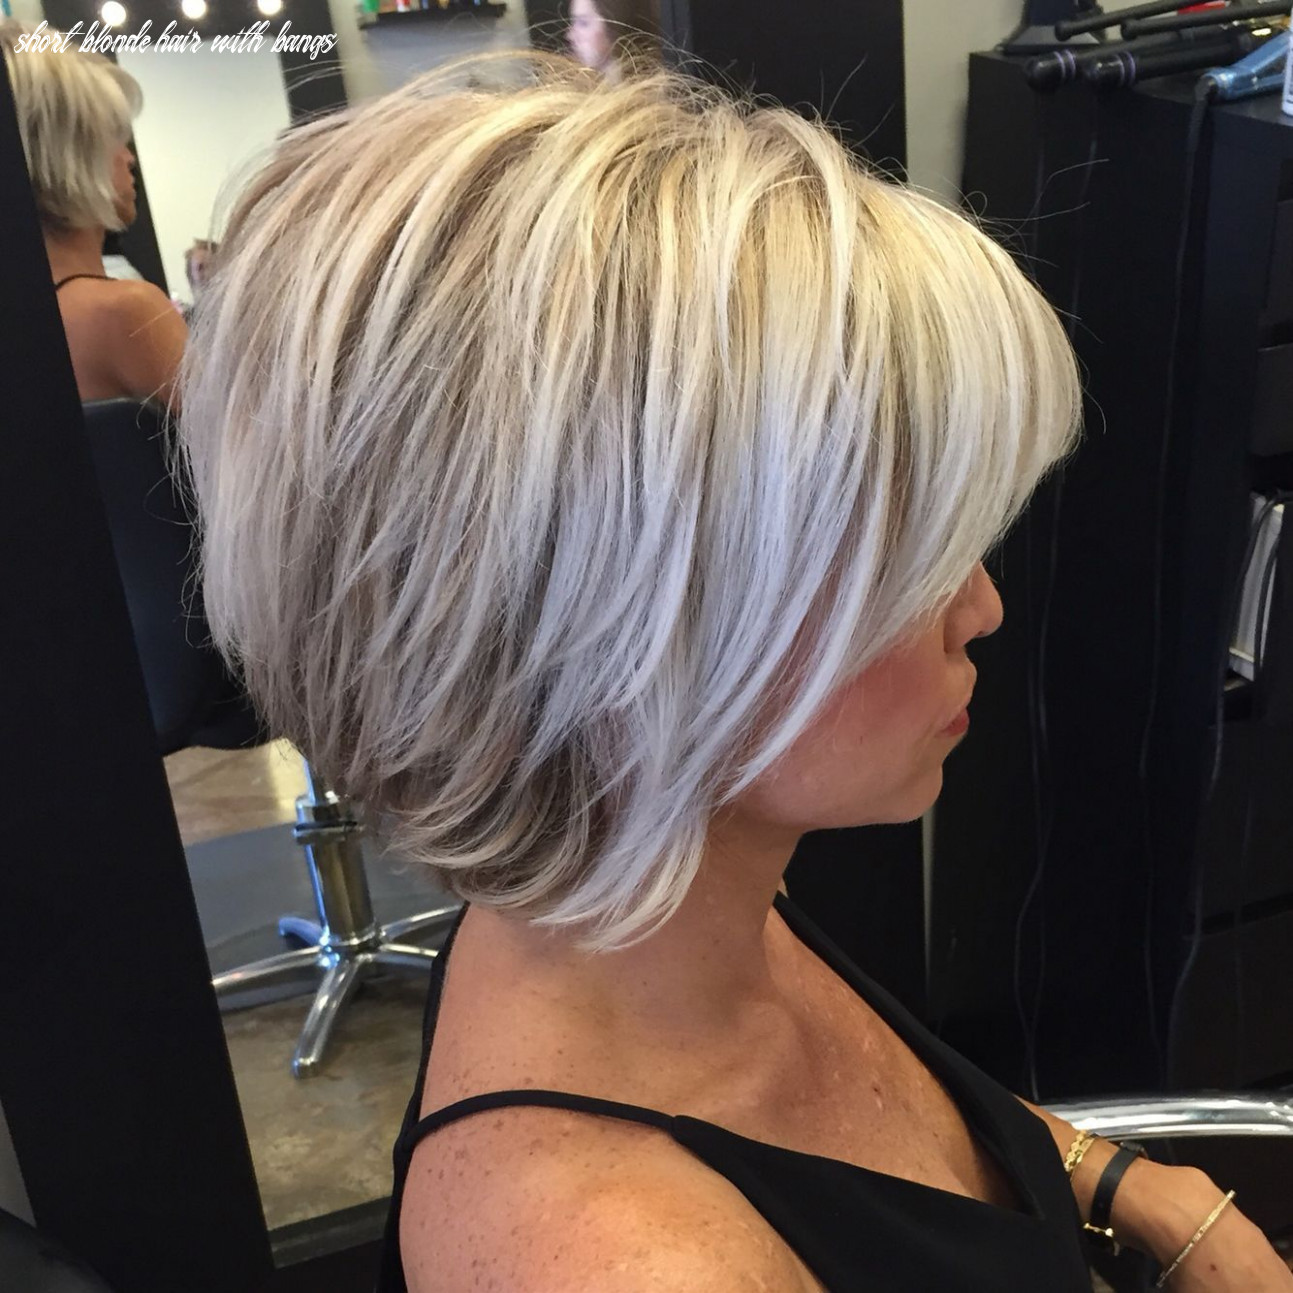 Pin on hair ideas short blonde hair with bangs